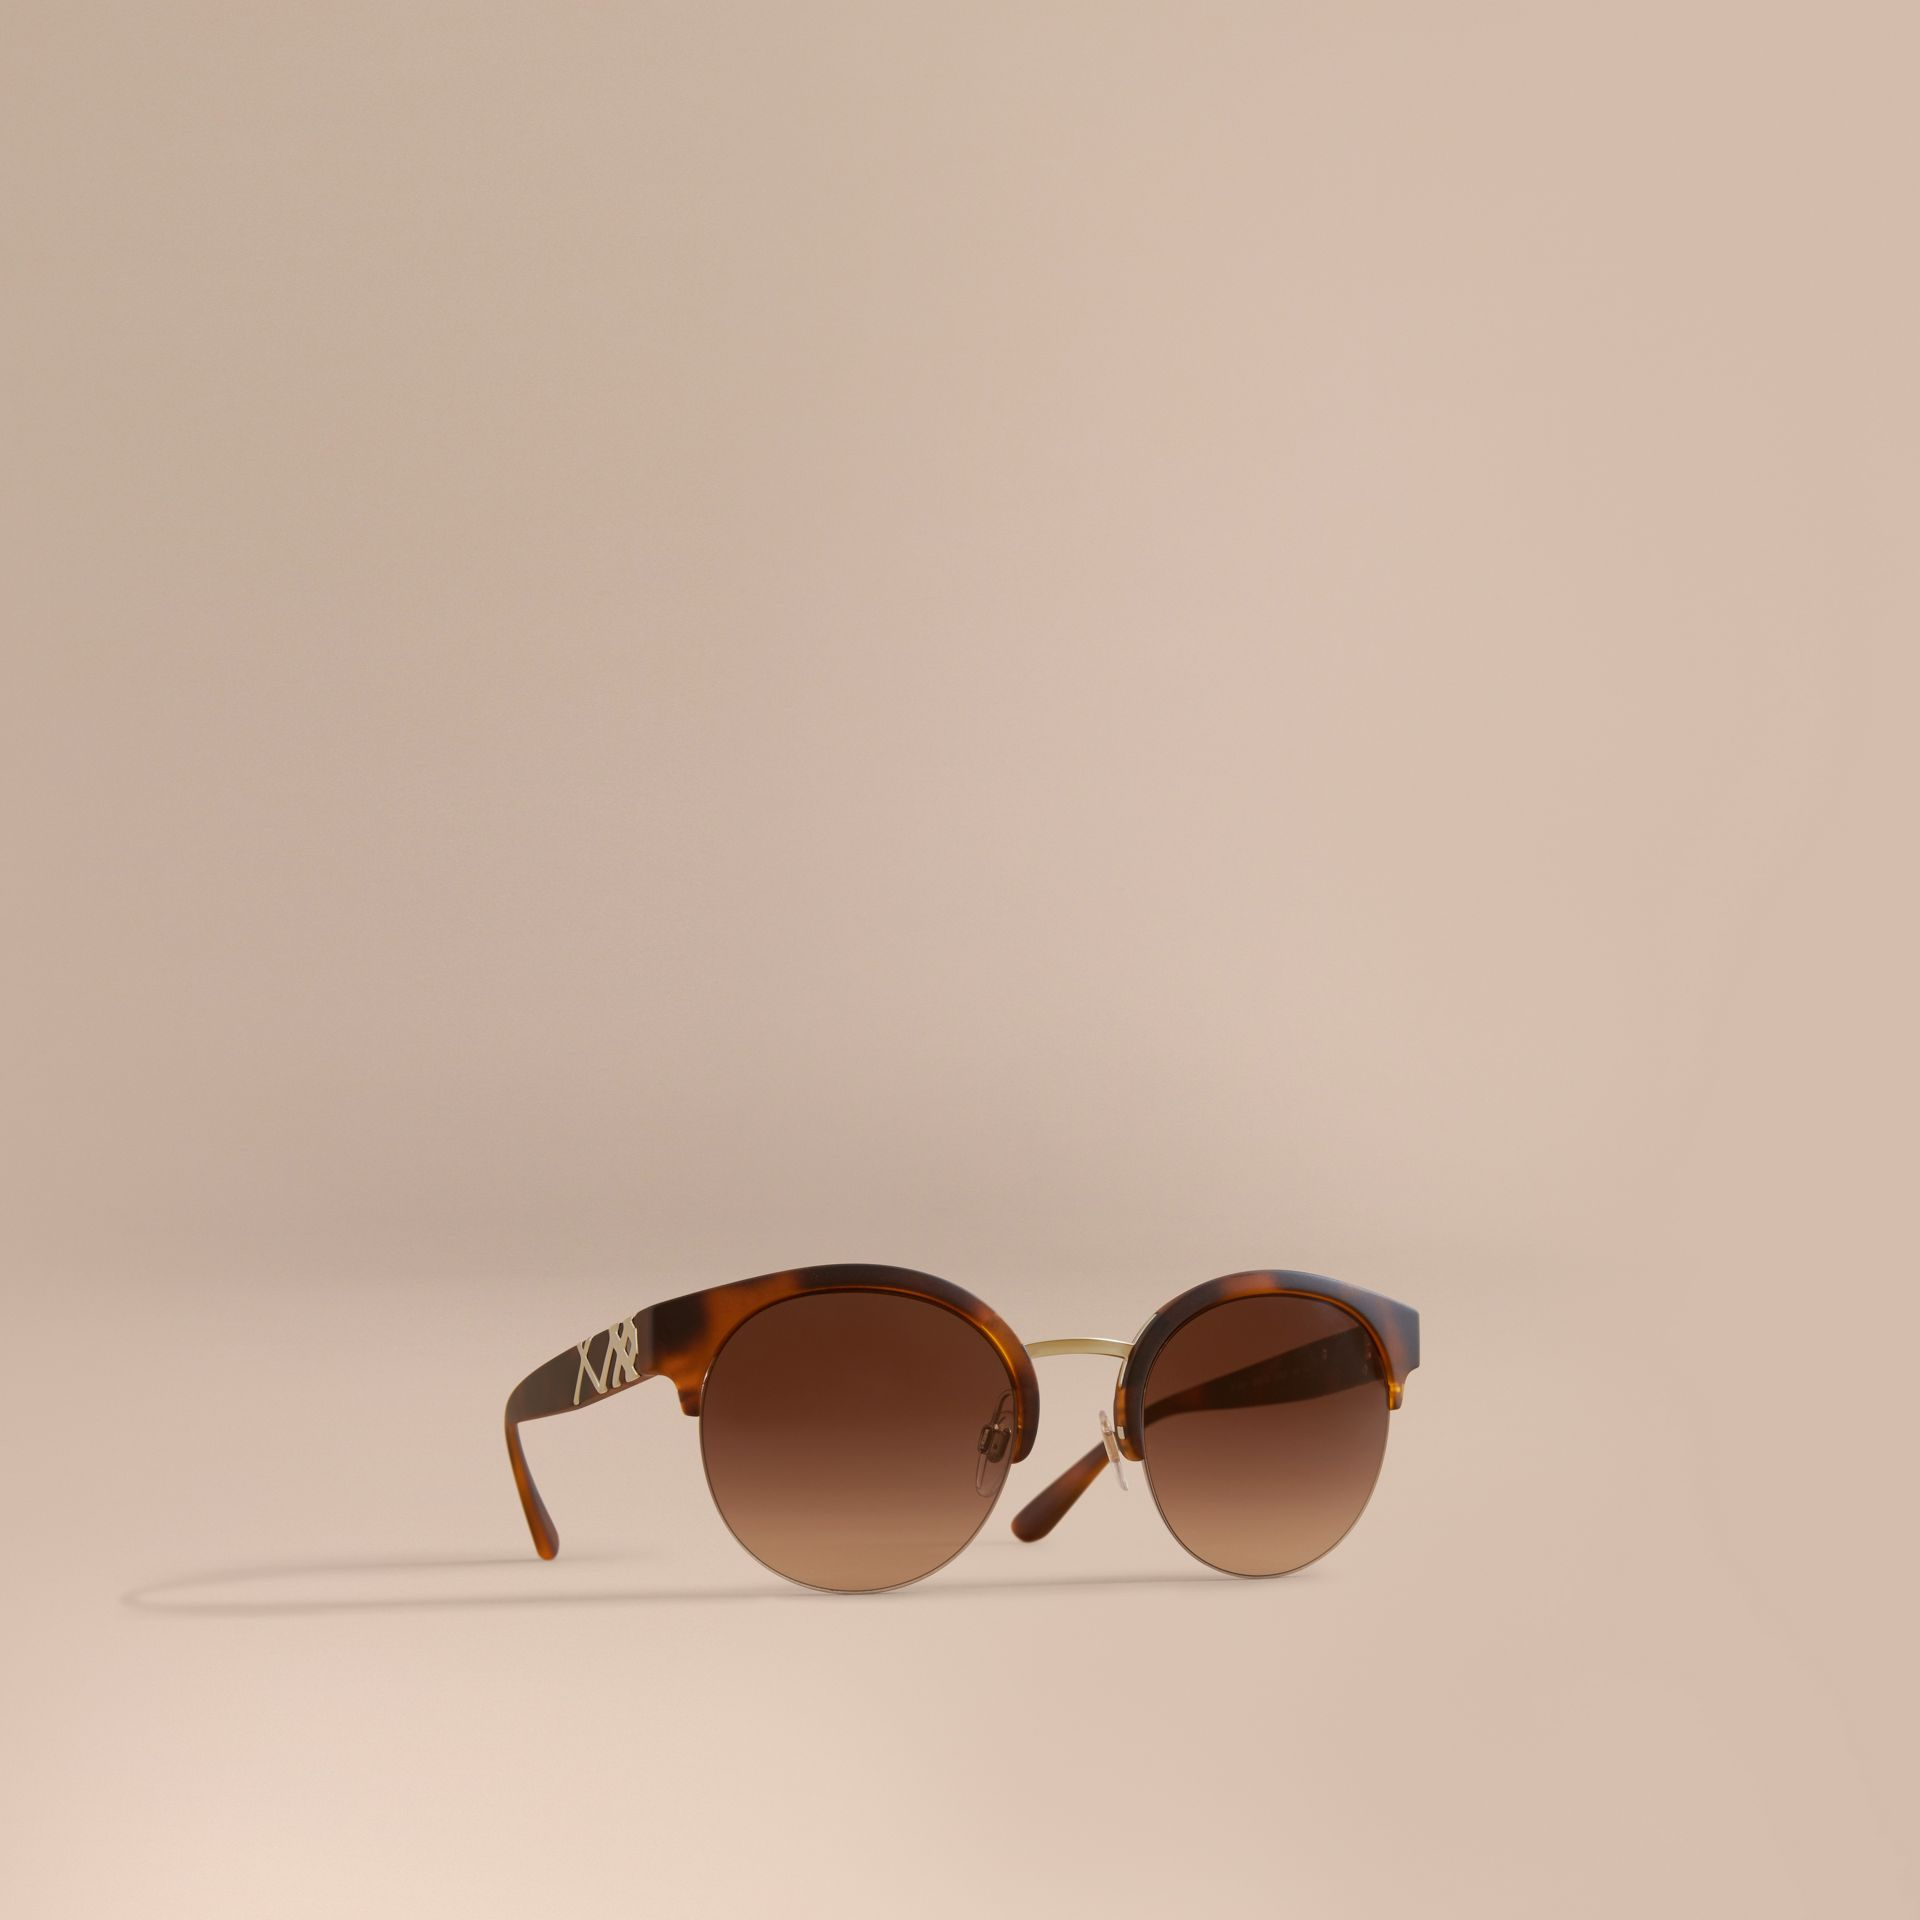 Check Detail Round Half-frame Sunglasses in Brown - Women | Burberry Canada - gallery image 1